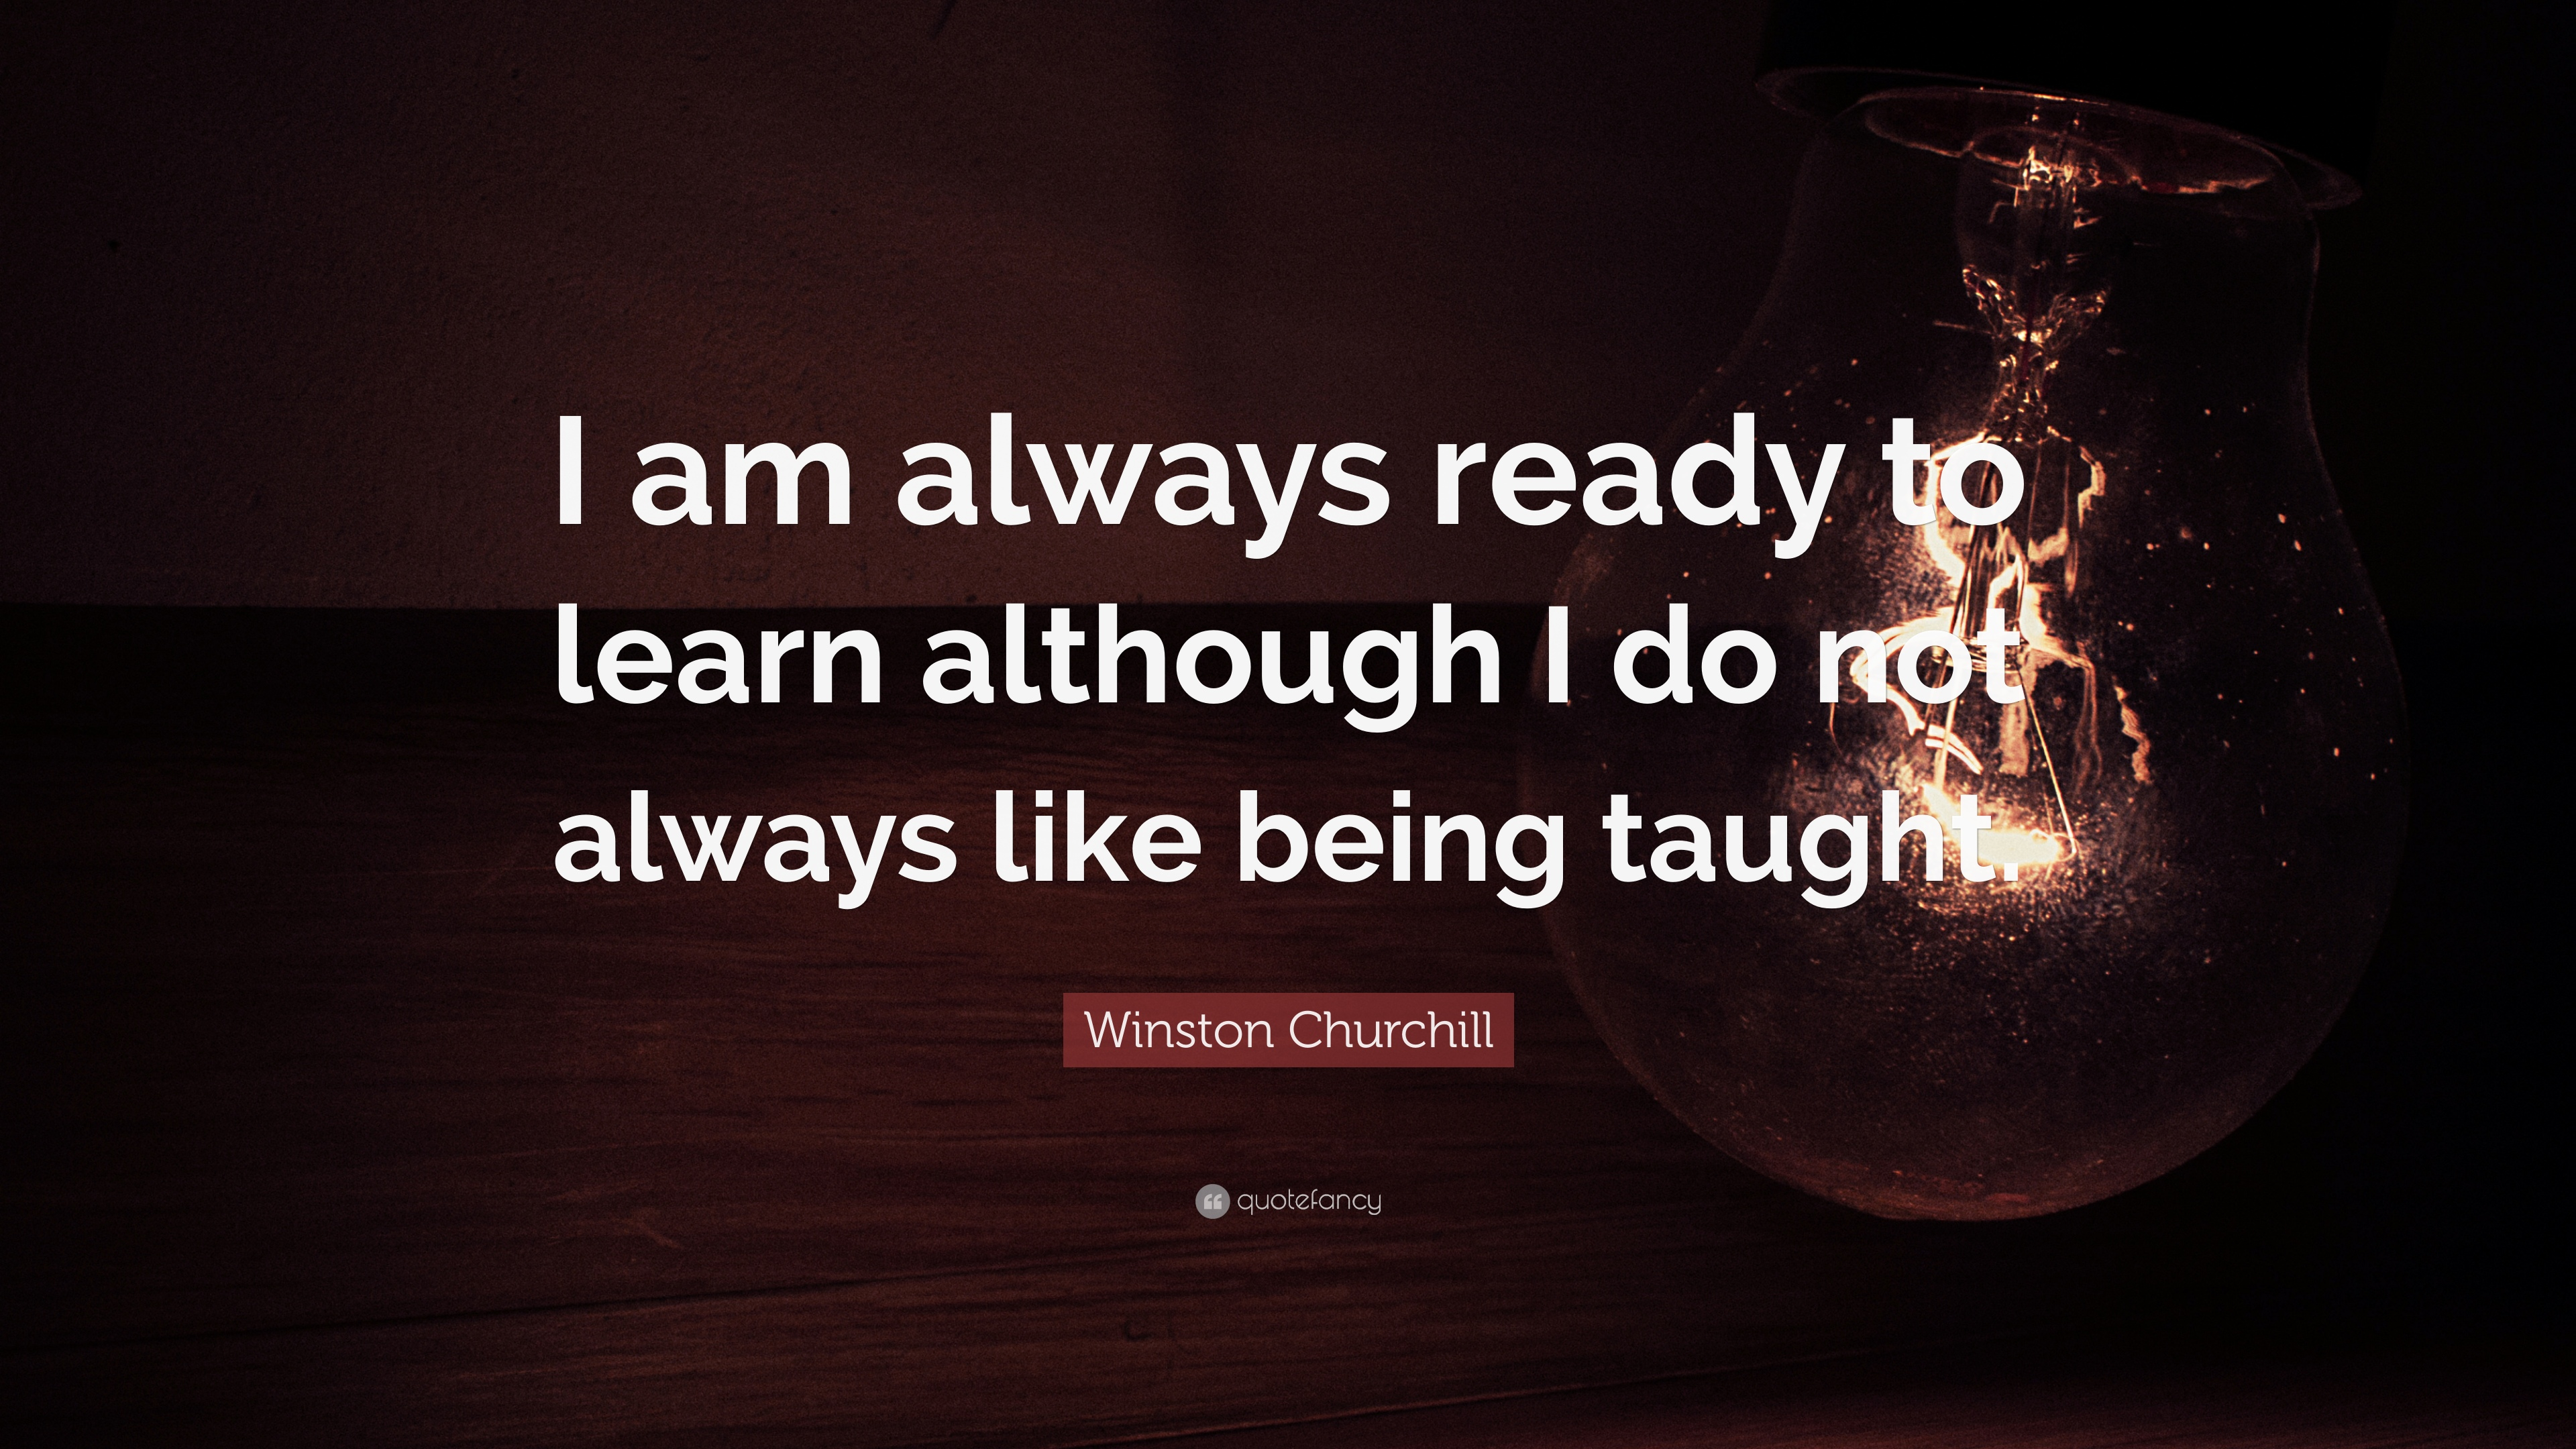 Education And Life Quotes Interesting Education Quotes 40 Wallpapers  Quotefancy